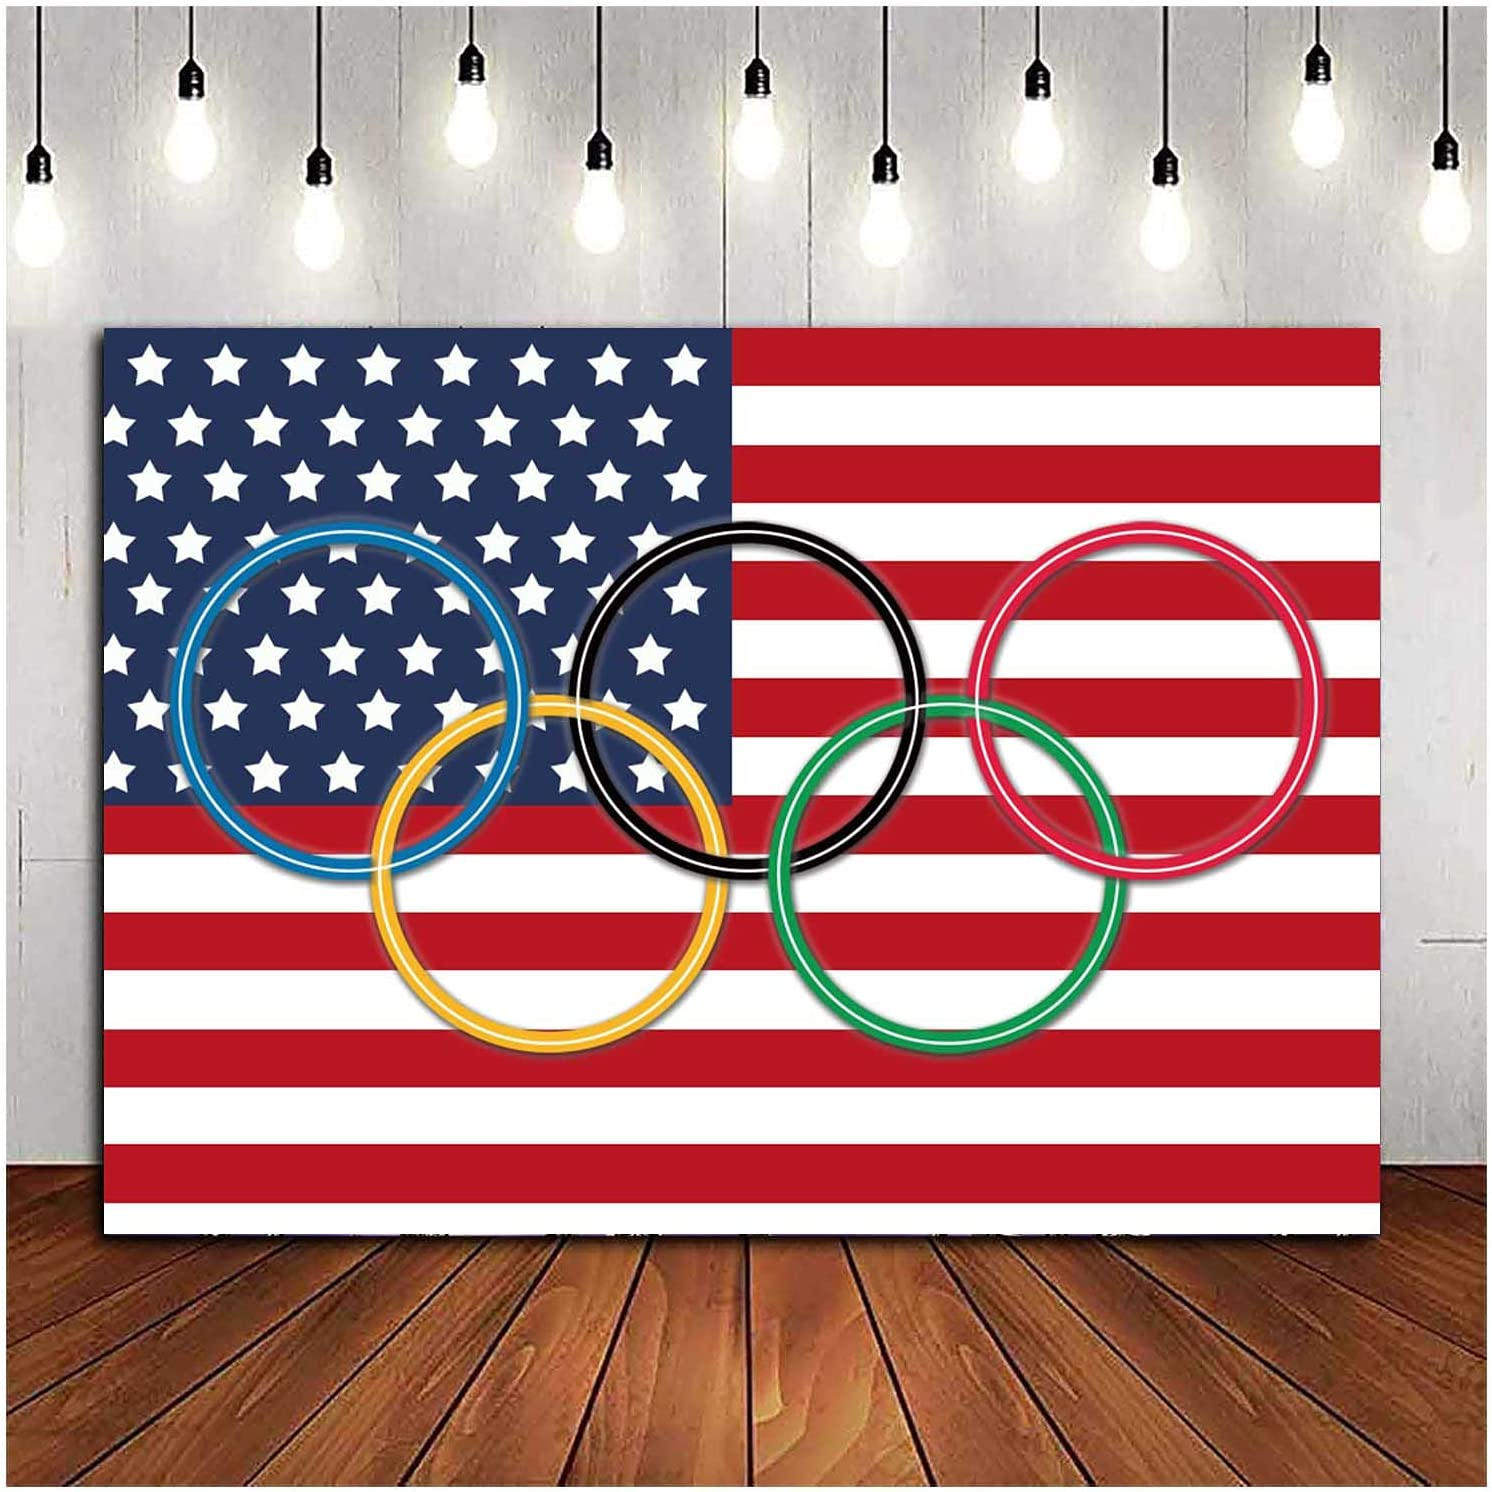 Olympic Rings International Photo Background Olympic Sport Countries for Classroom Garden Grand Opening Sports Clubs Party Events Decor Photography Backdrops 7X5FT Vinyl Shooting Props